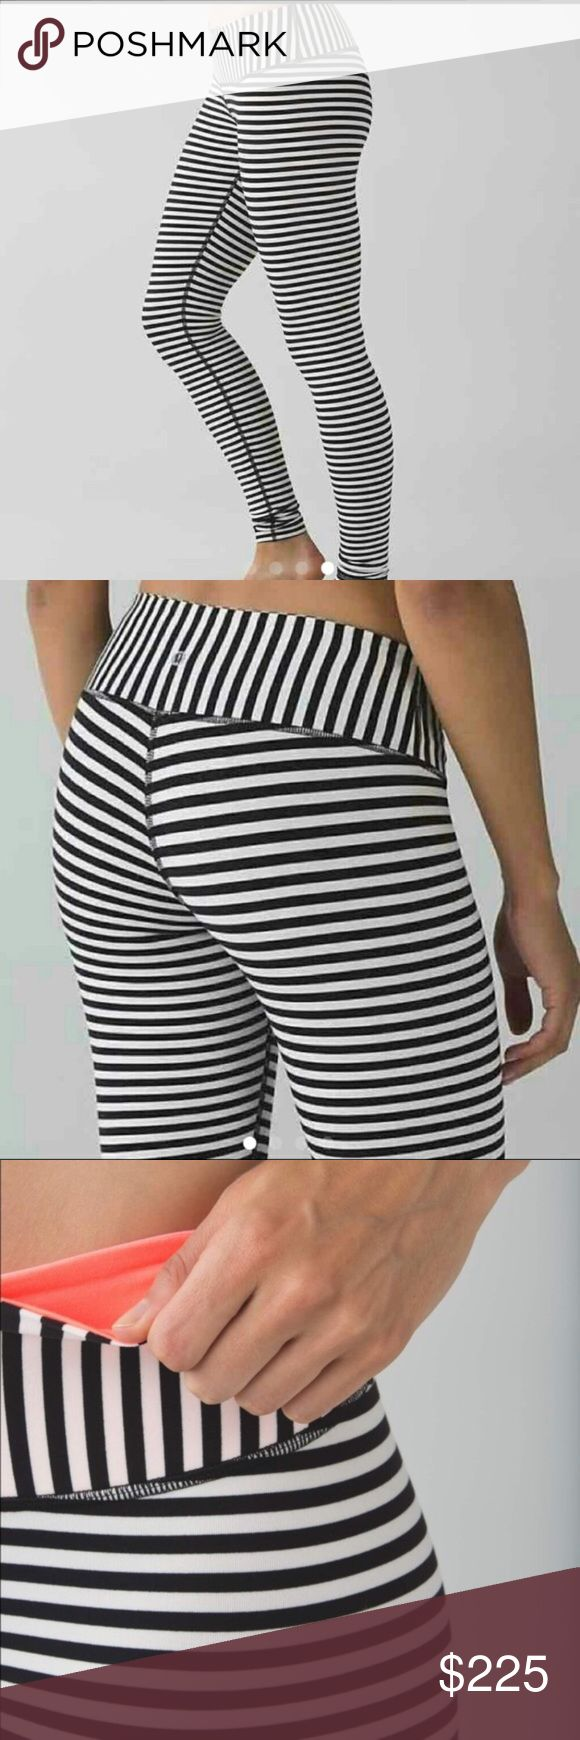 NWT Lululemon Narrow Stripes Bold Angel Wing Narrow Stripes Bold Angel Wing Wunder Under Pants with Grapefruit pink interior waistband.  Brand new With Tags! Perfect Christmas gift! Size 4 lululemon athletica Pants Leggings